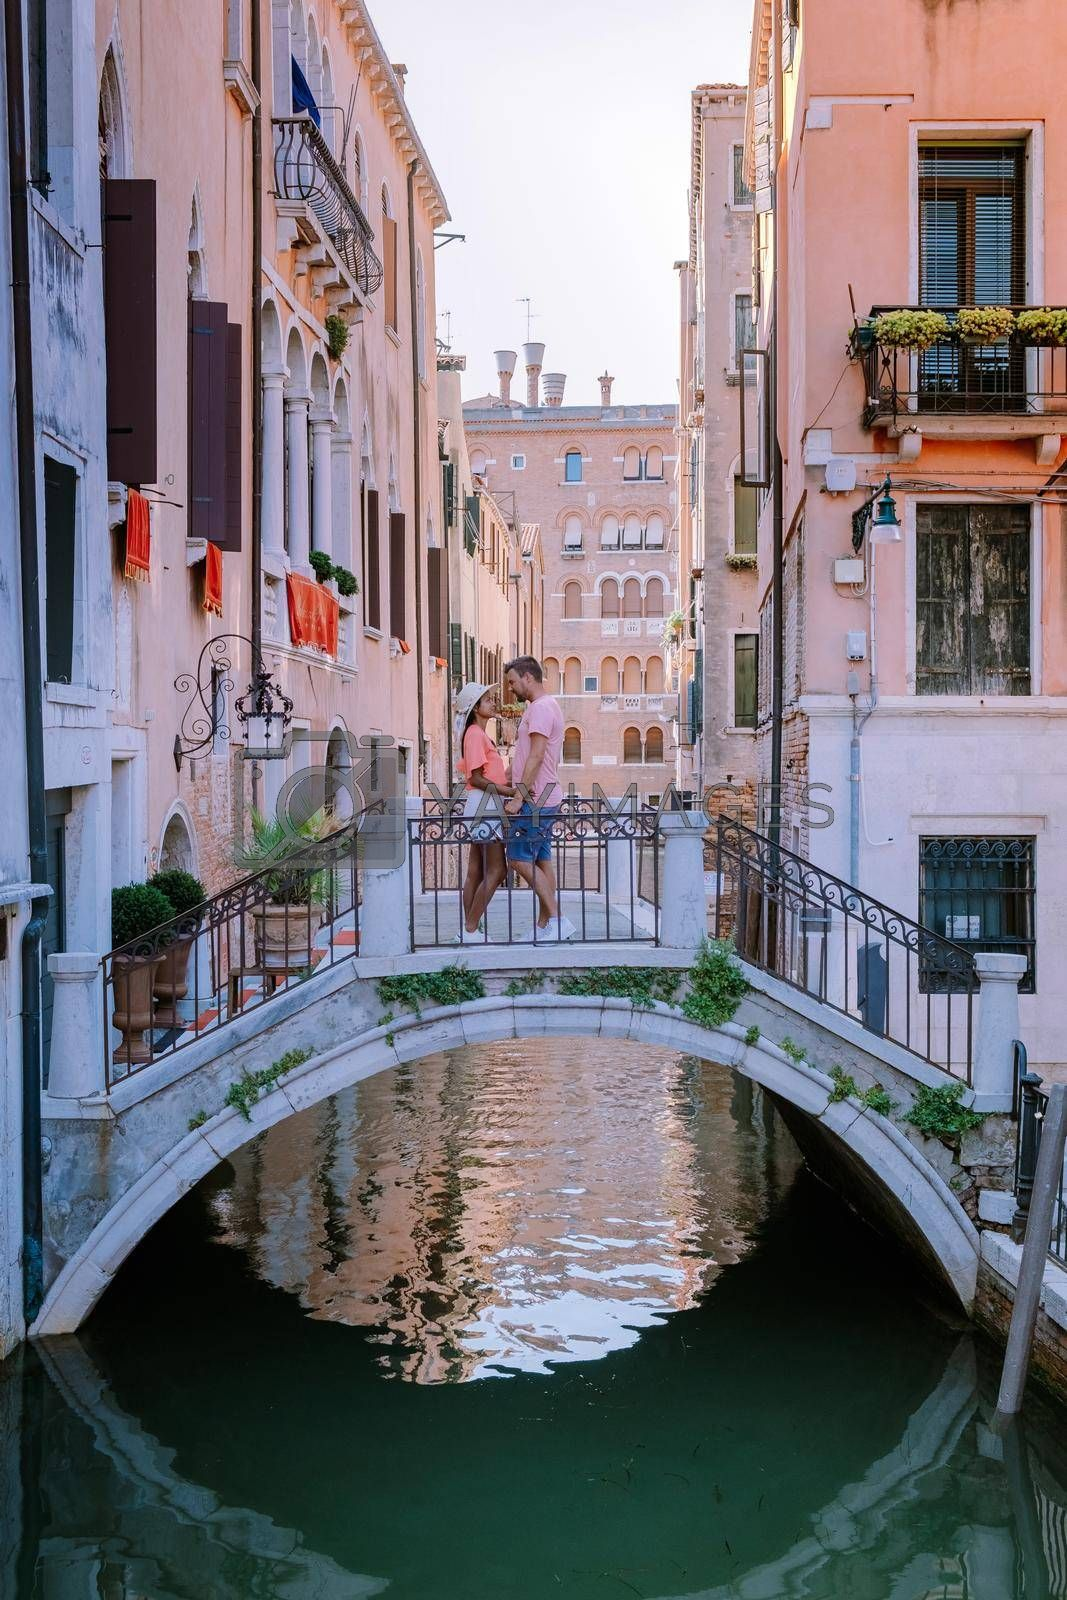 couple men and woman on a city trip to Venice Italy, colorful streets with canals Venice. Europe